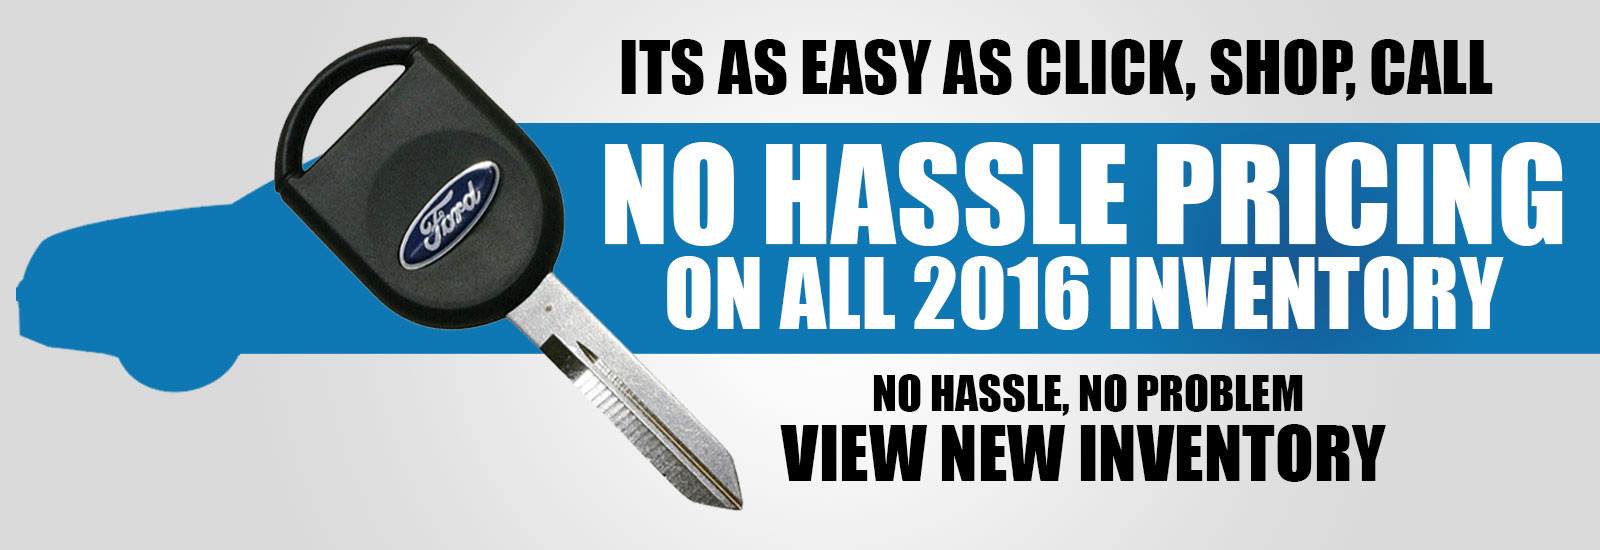 No Hassle Pricing on 2016 Inventory